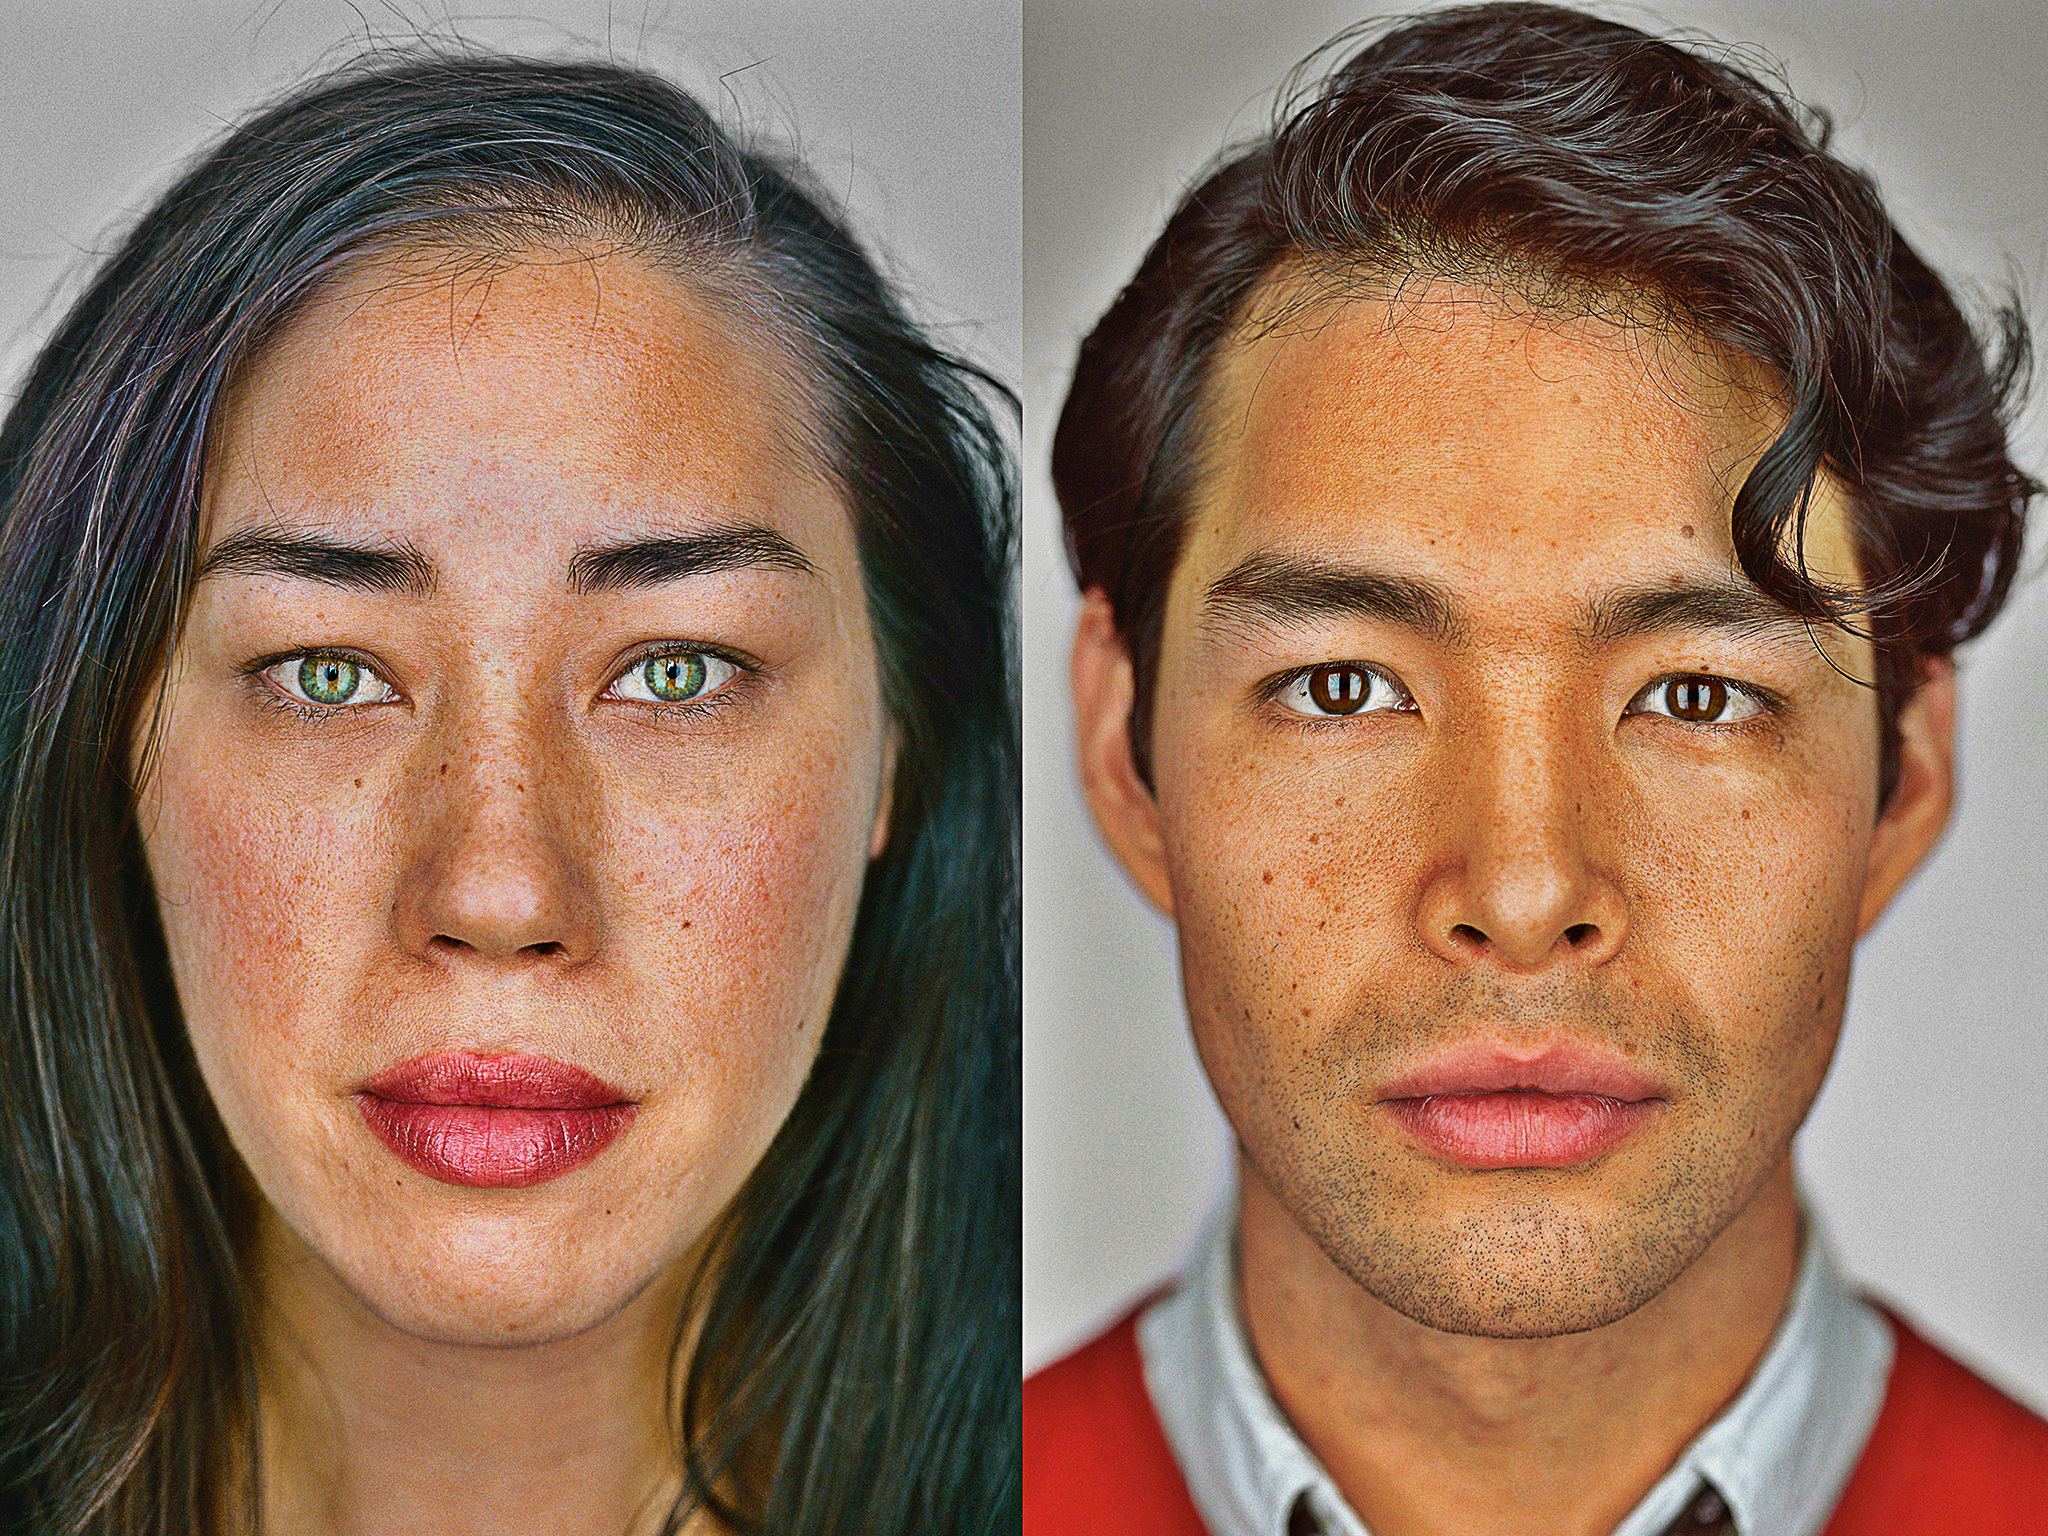 Here Is How Humans Will Look Like In 1,000 Years According To